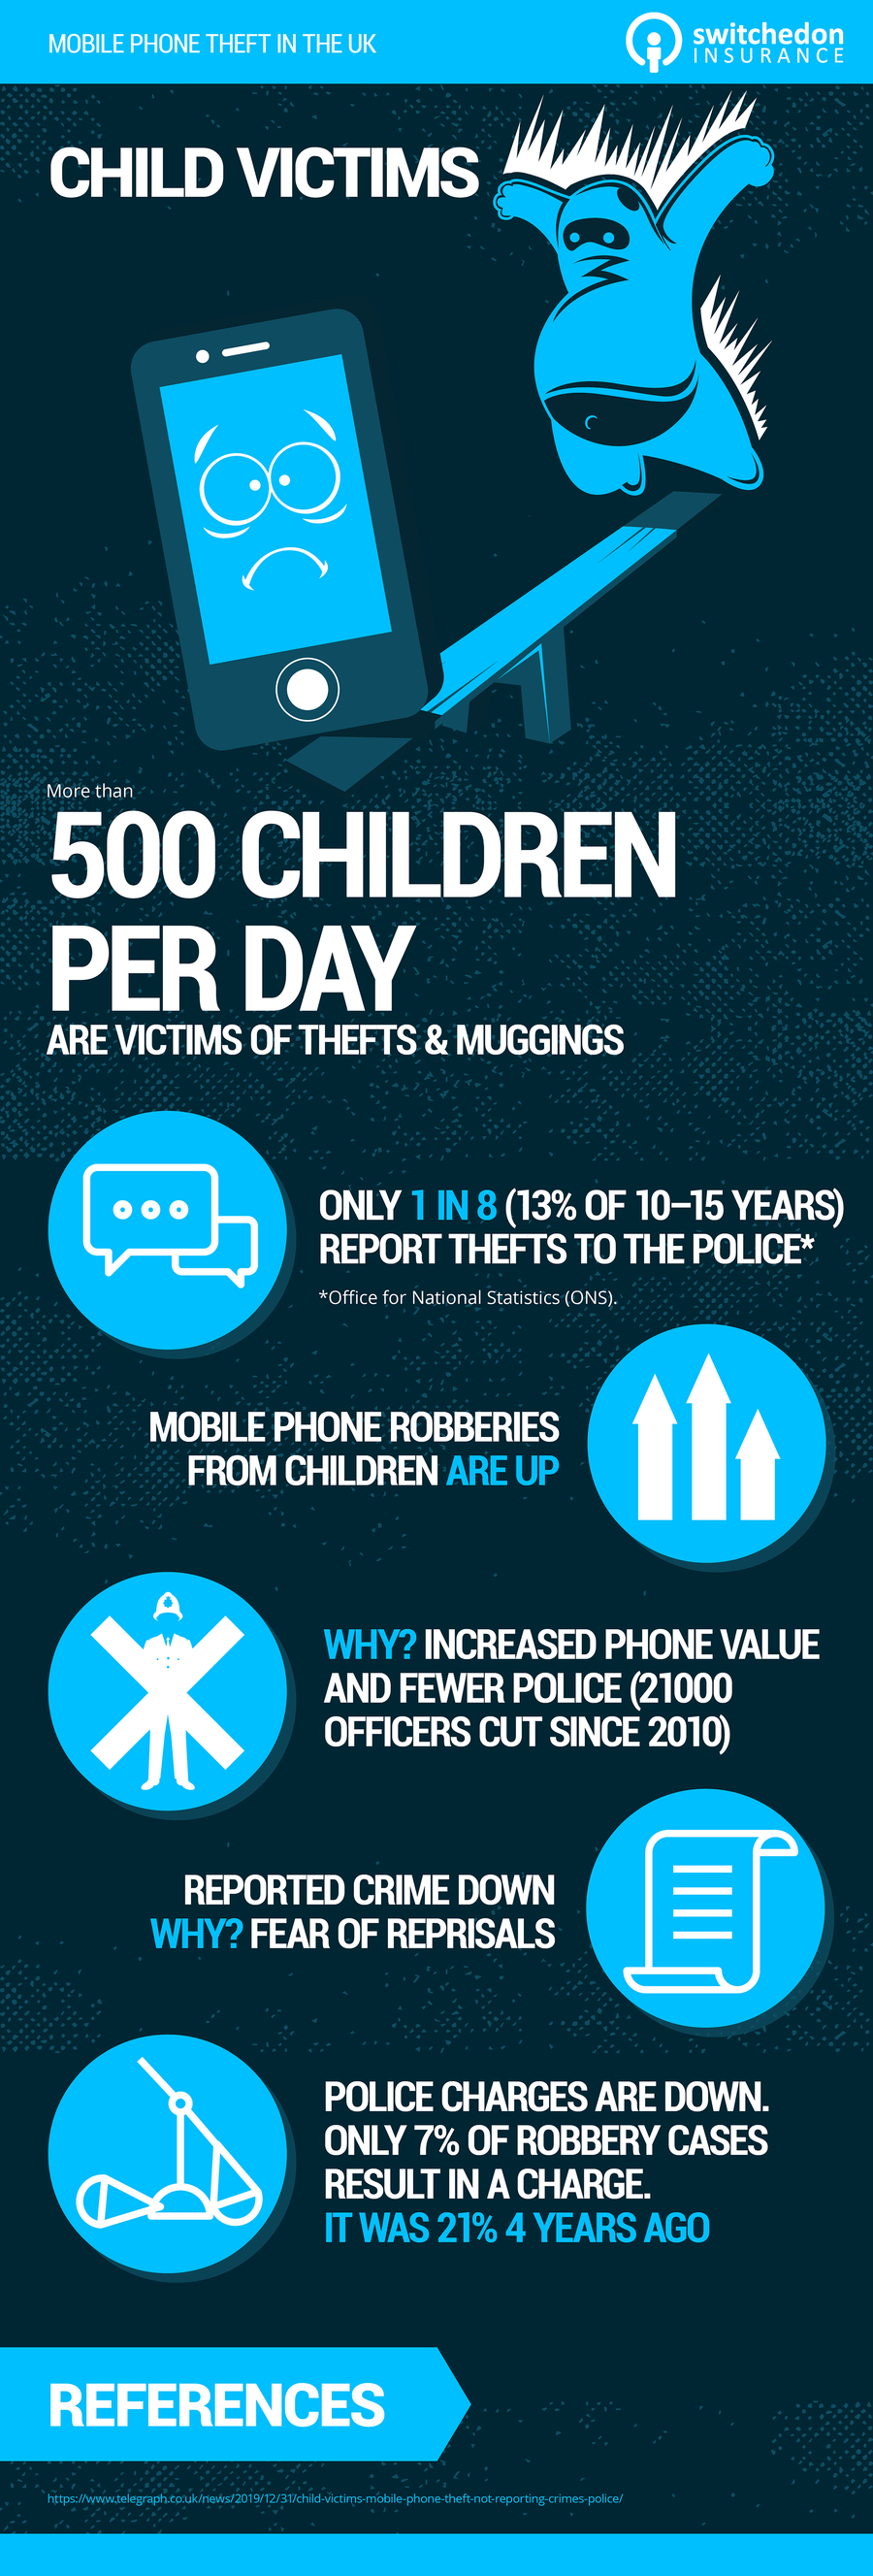 Child Victims of mobile phone theft infographic